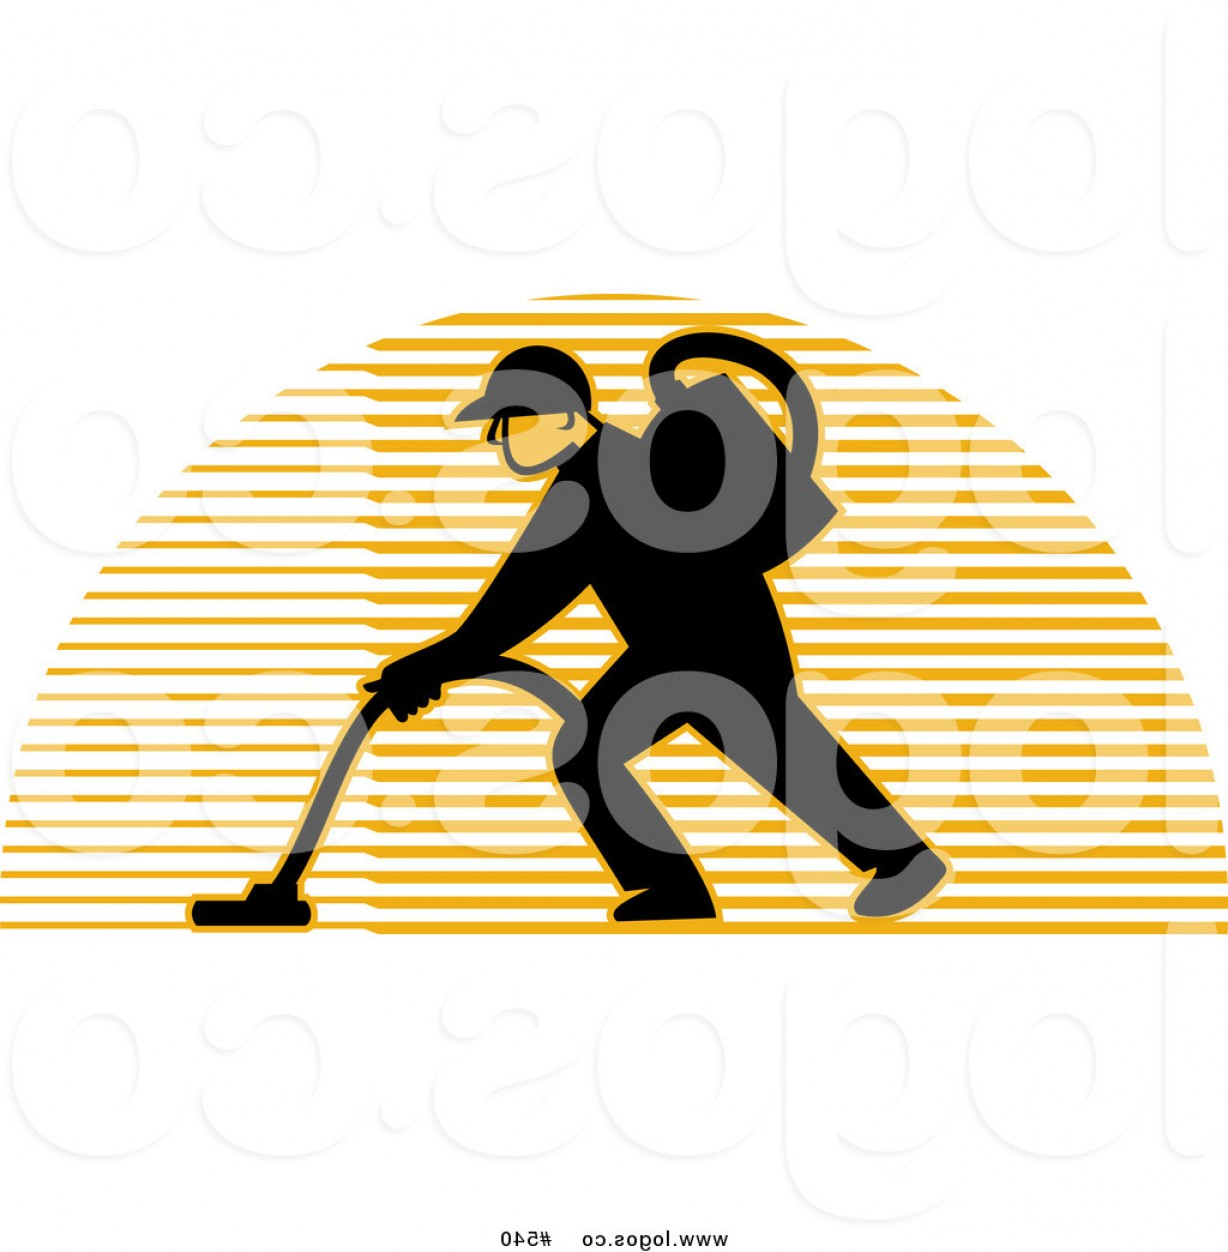 Janitorial Vector: Royalty Free Vector Logo Of A Carpet Cleaner By Patrimonio